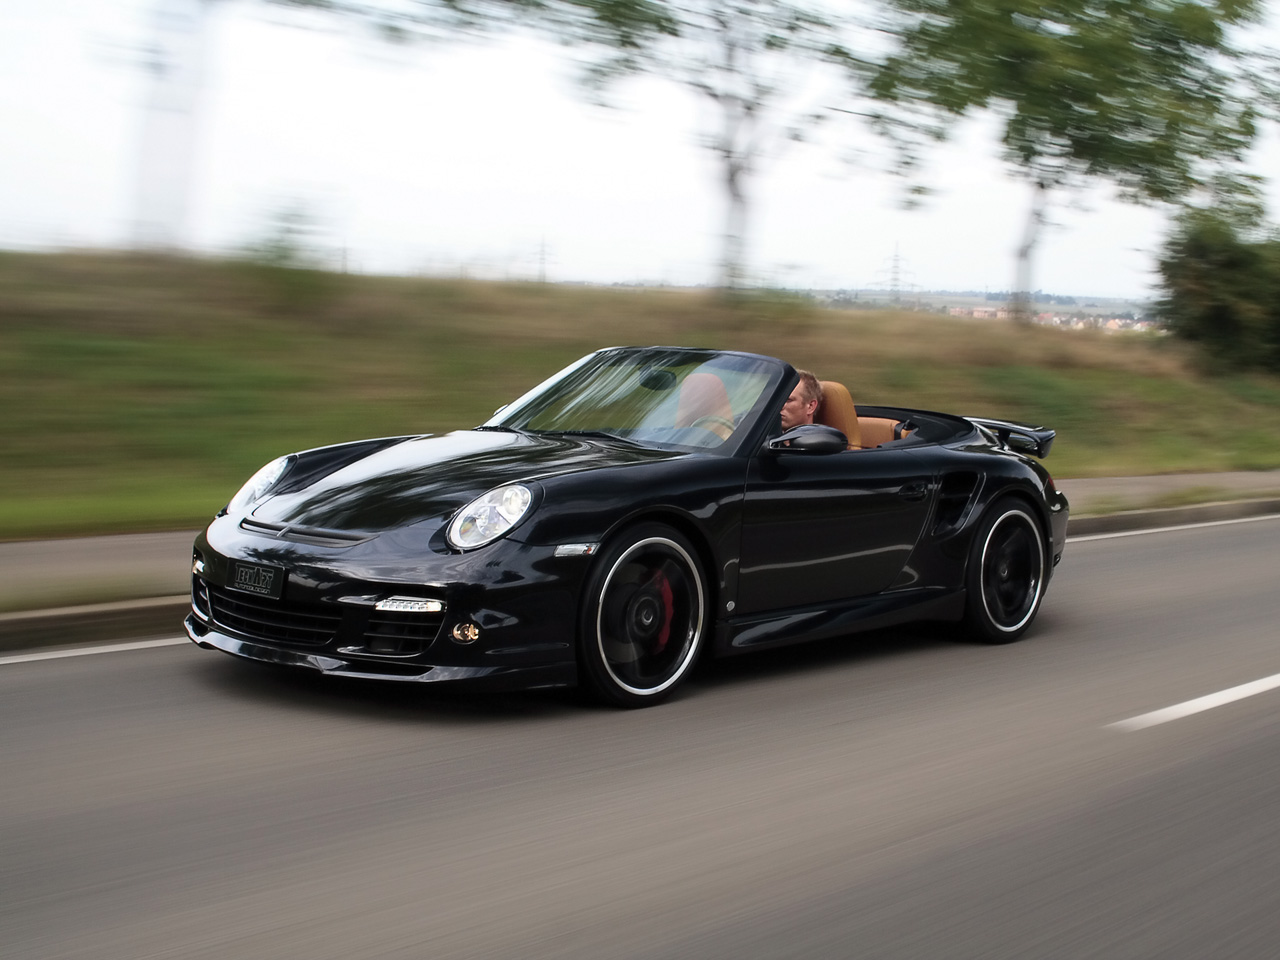 porsche 911 turbo cabriolet 800x600 wallpaper. Black Bedroom Furniture Sets. Home Design Ideas